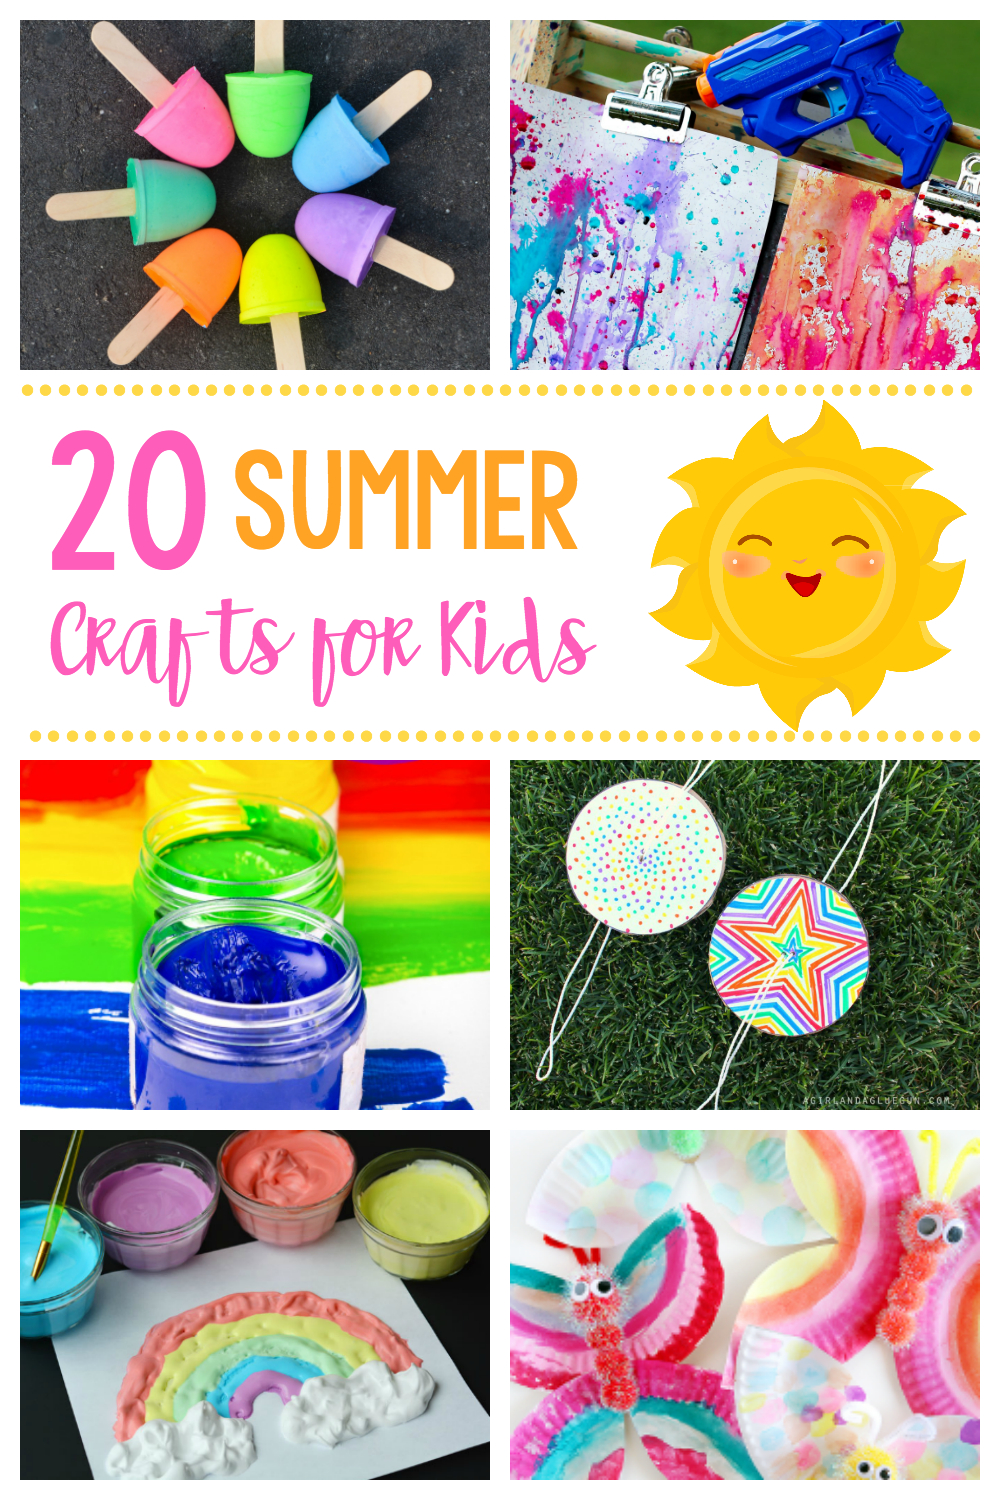 20 simple & fun summer crafts for kids